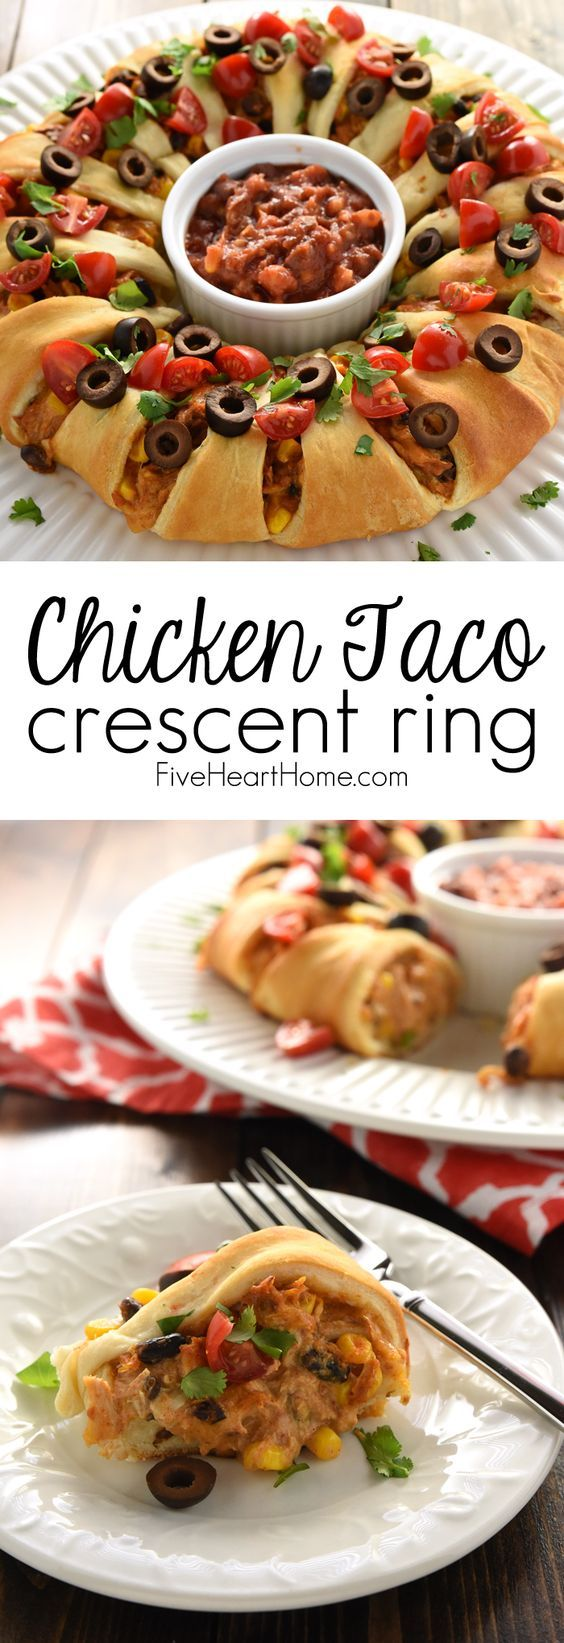 Chicken or Turkey Taco Crescent Ring ~ a delicious way to use up leftover chicken or holiday turkey...mixed with black beans, corn, and cream cheese, flavored with taco seasoning, and wrapped in light, flaky crescent roll dough for an easy yet impressive appetizer or dinner!   FiveHeartHome.com